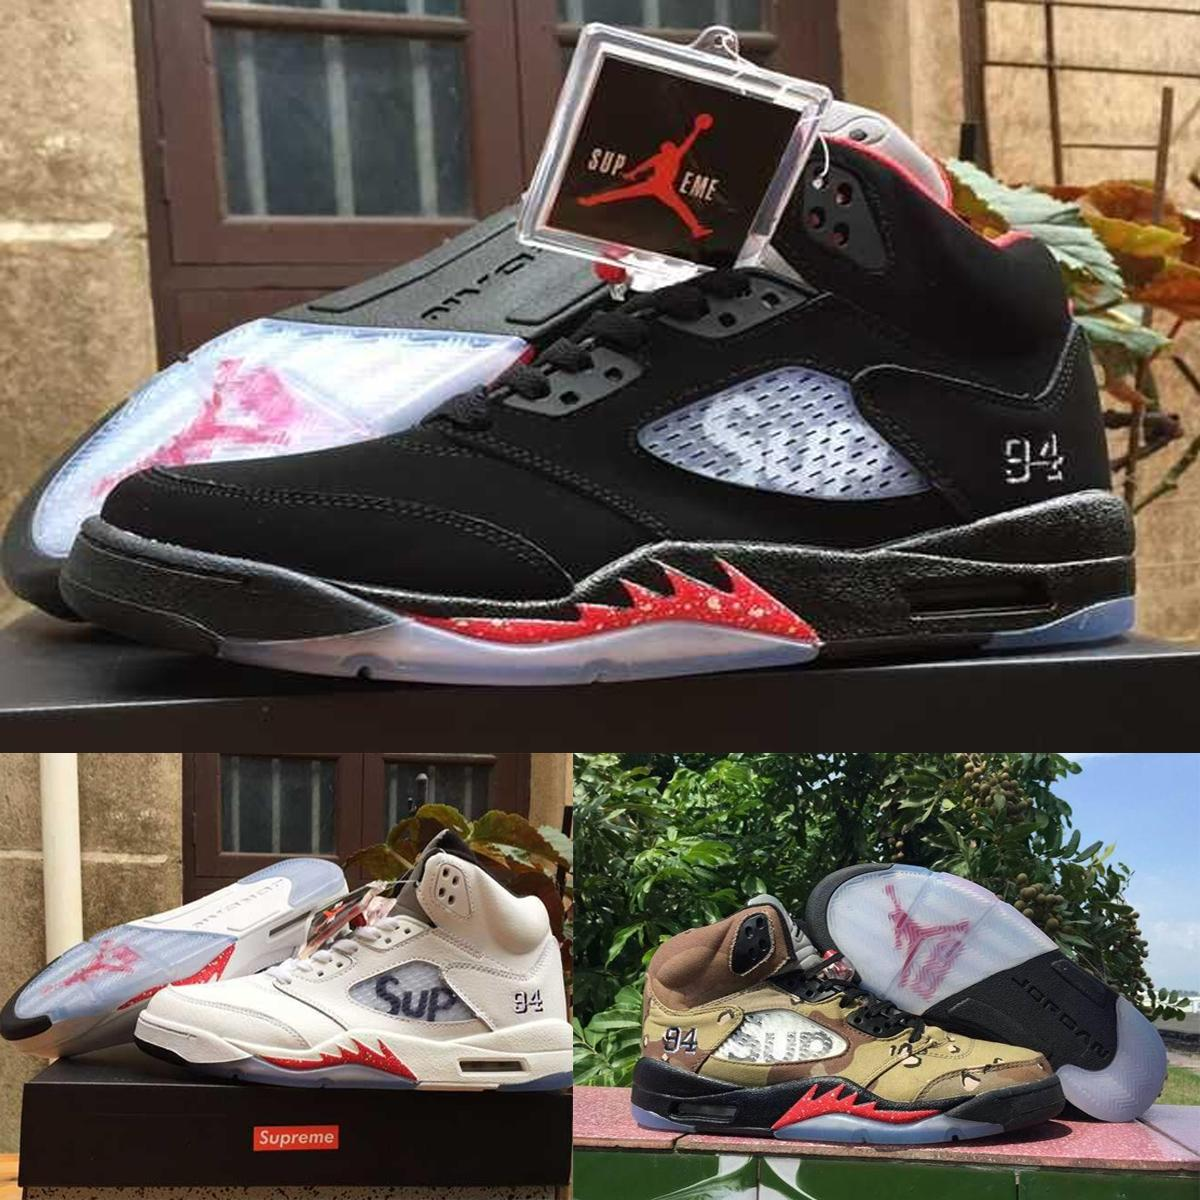 c9eb2c1d7bee Nike Air Jordan 5 Supreme Retro V Sup 5S Desert Camo Black White Mens Basketball  Shoes